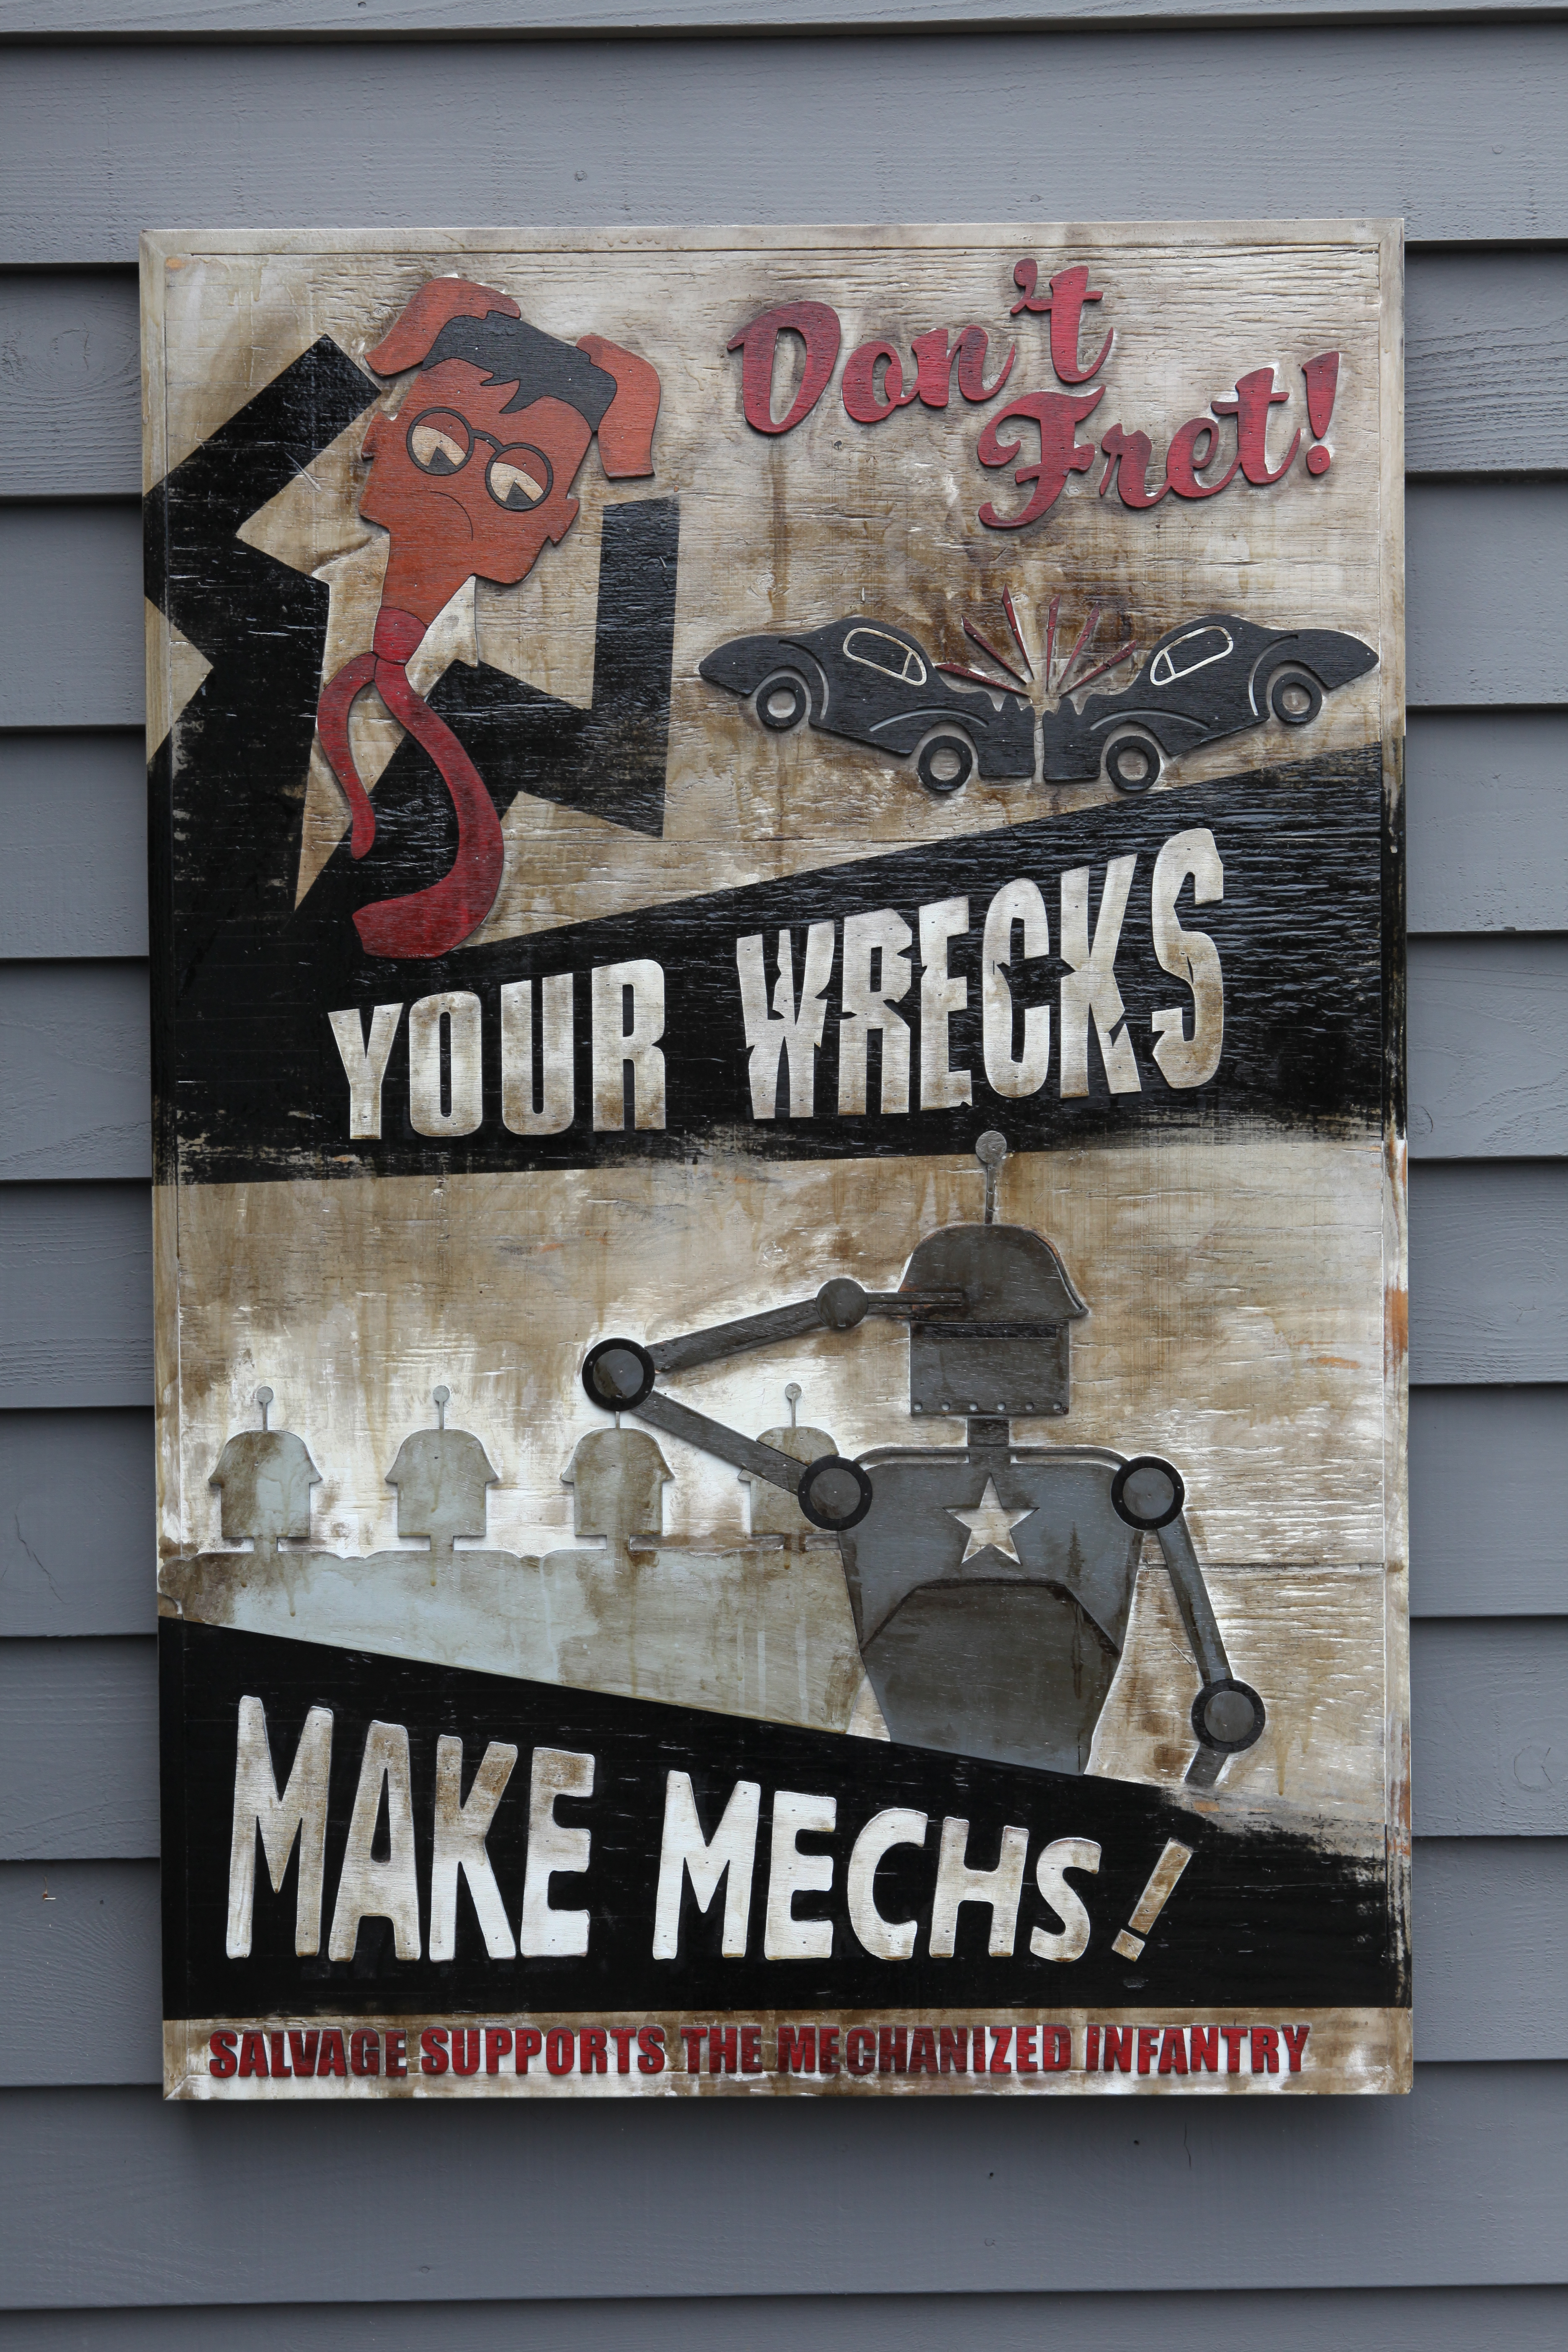 Wrecks for Mechs